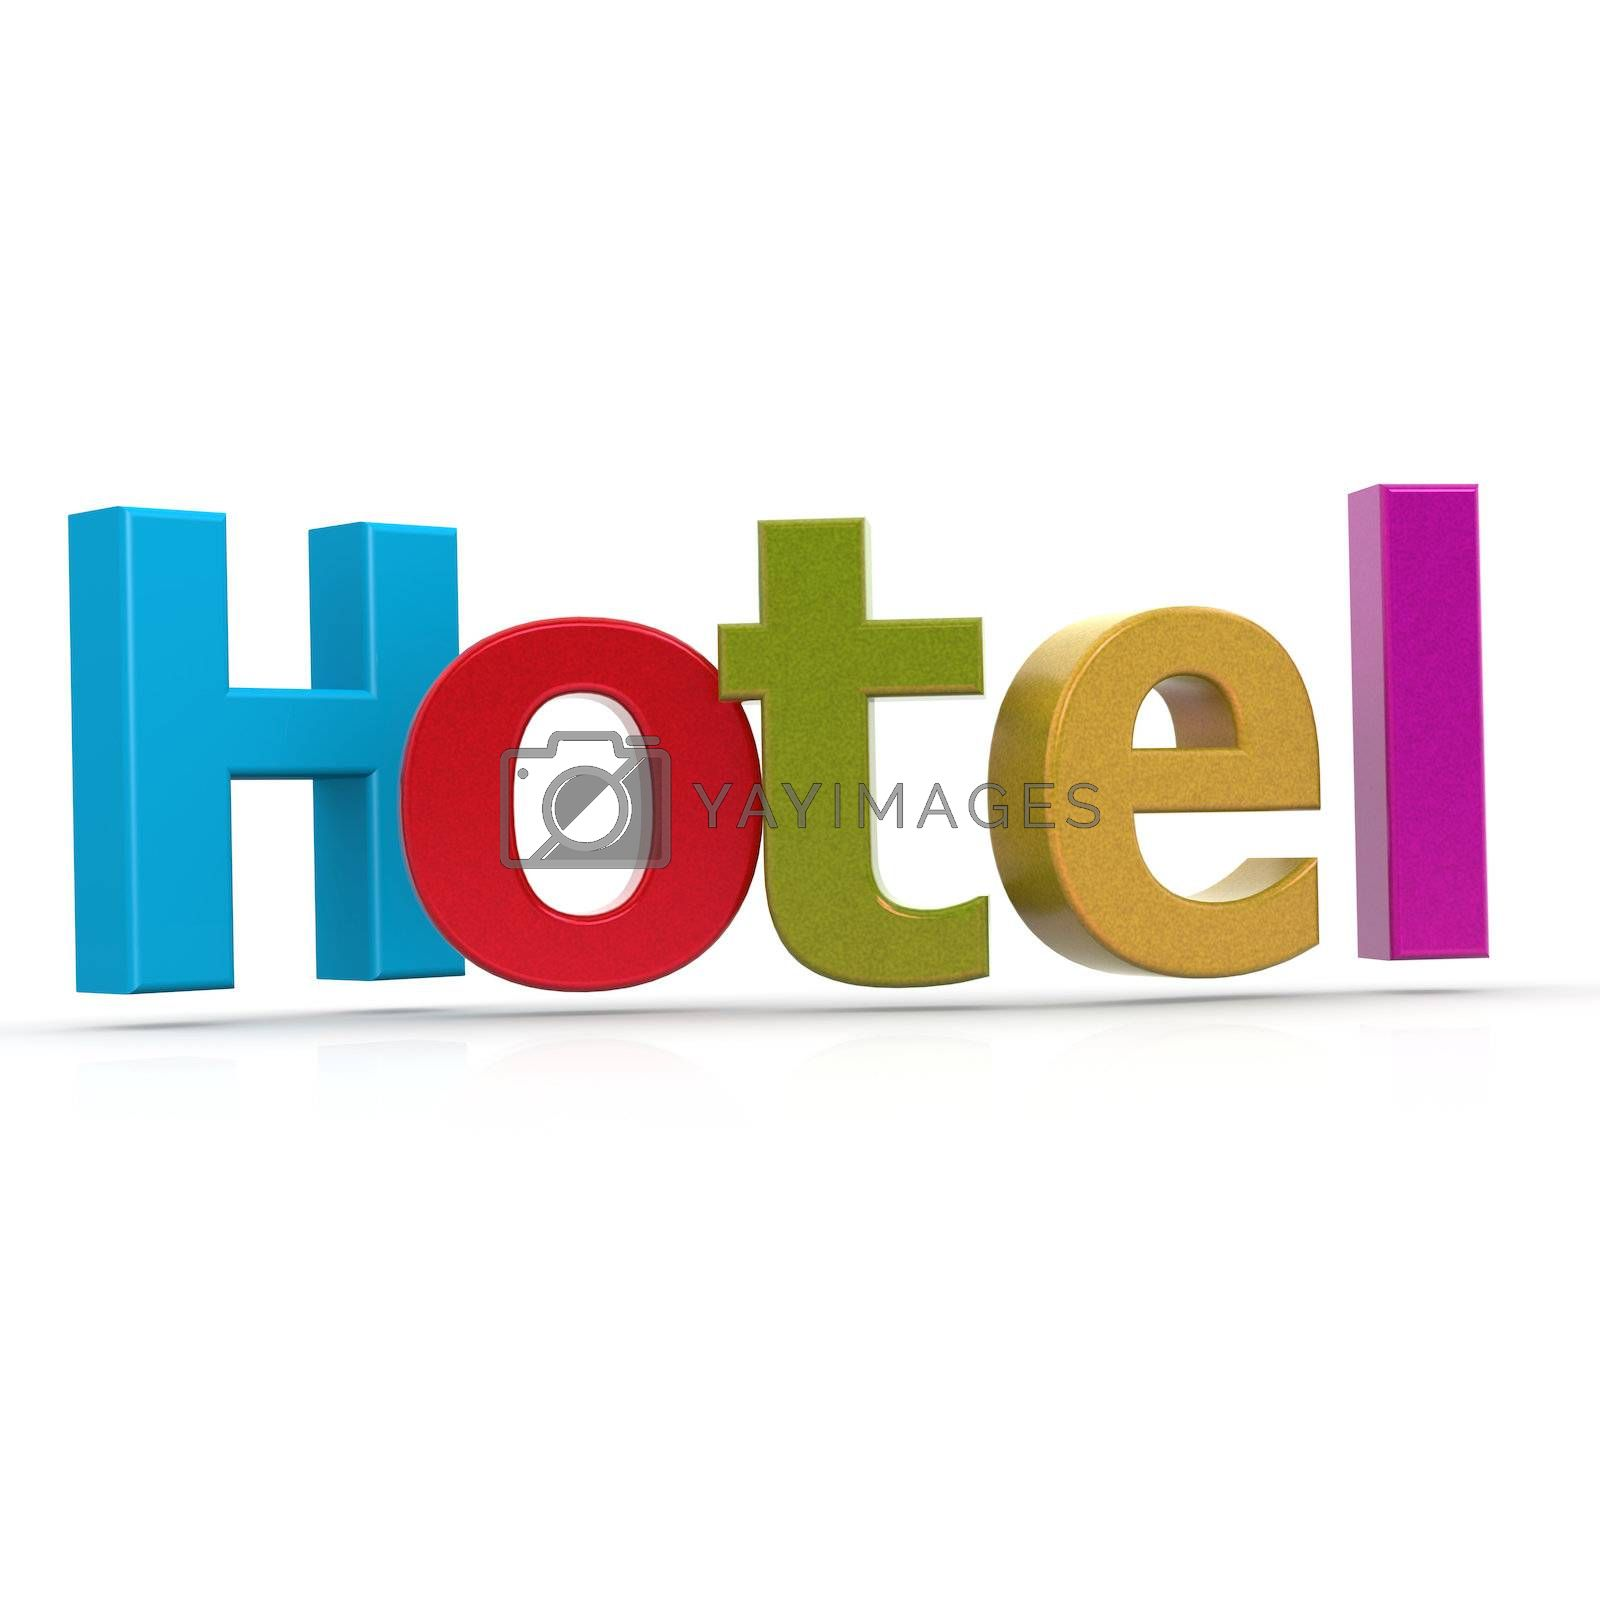 Royalty free image of Hotel word by tang90246